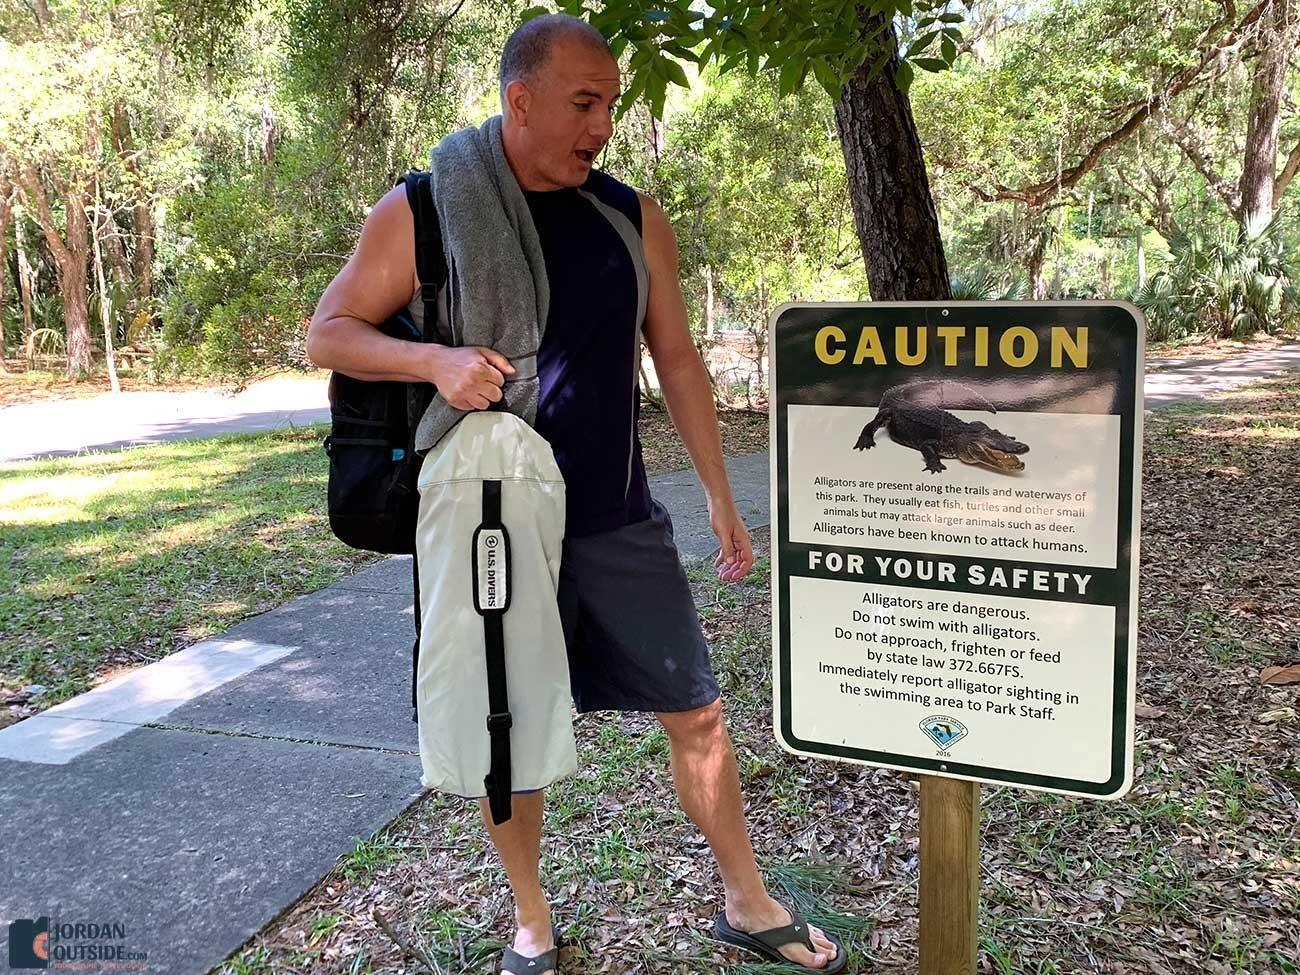 Watch out for alligators